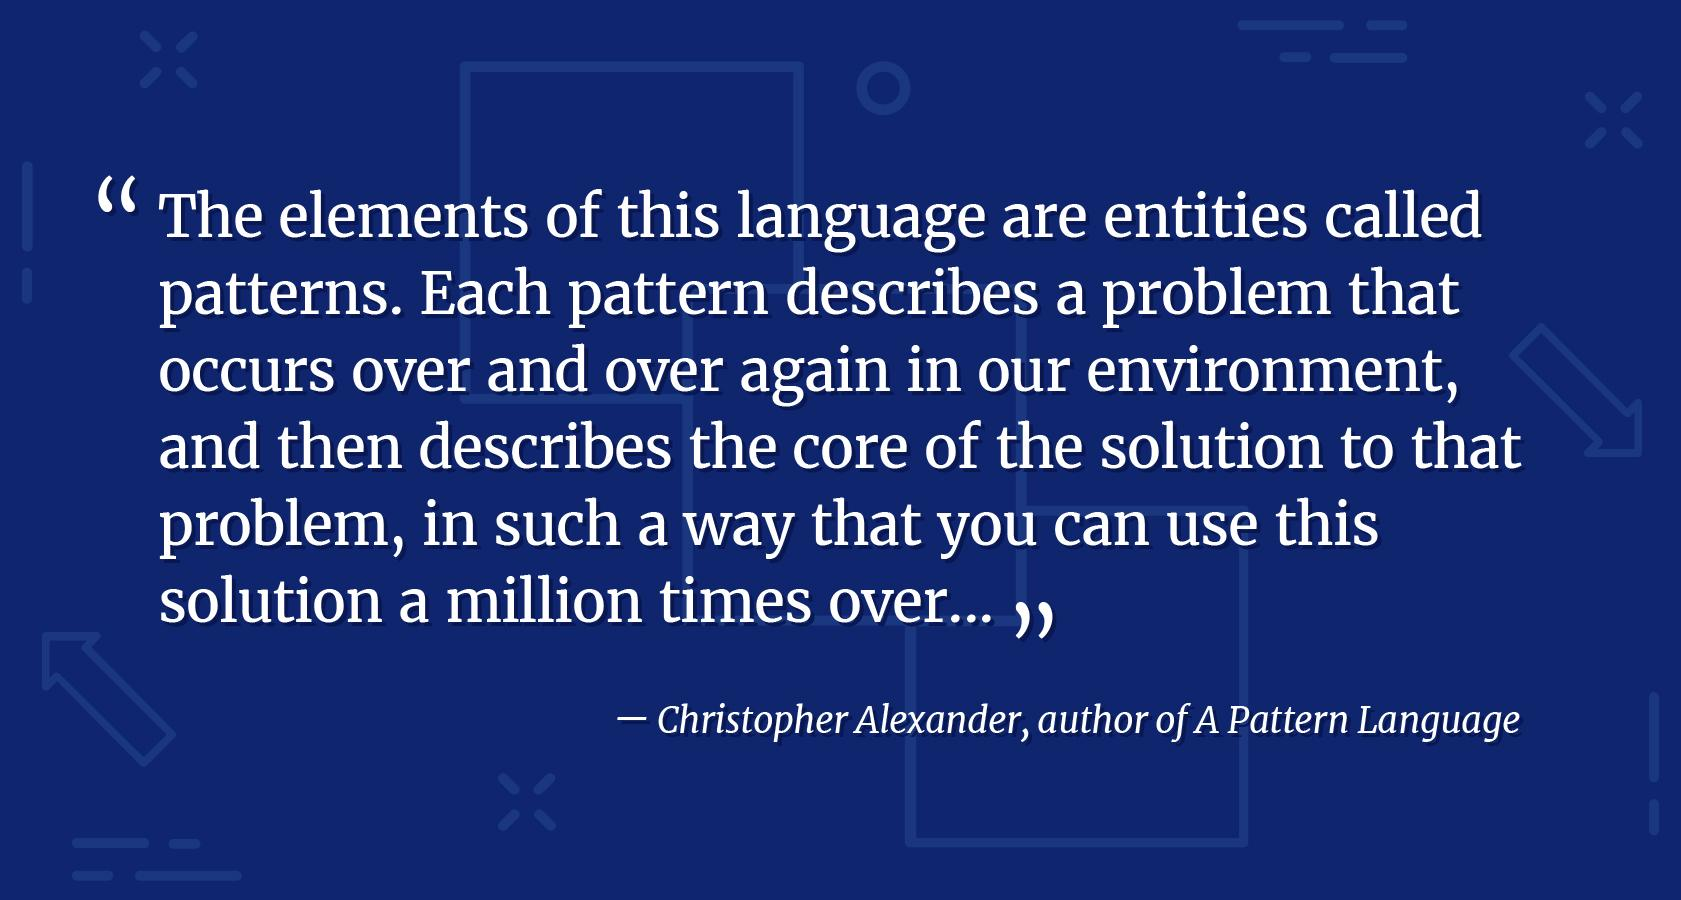 Design language elements quote from Christopher Alexander, author of A Pattern Language. The elements of this language are entities called patterns. Each pattern describes a problem that occurs over and over again in our environment, and then describes the core of the solution to that problem, in such a way that you can use this solution a million times over.